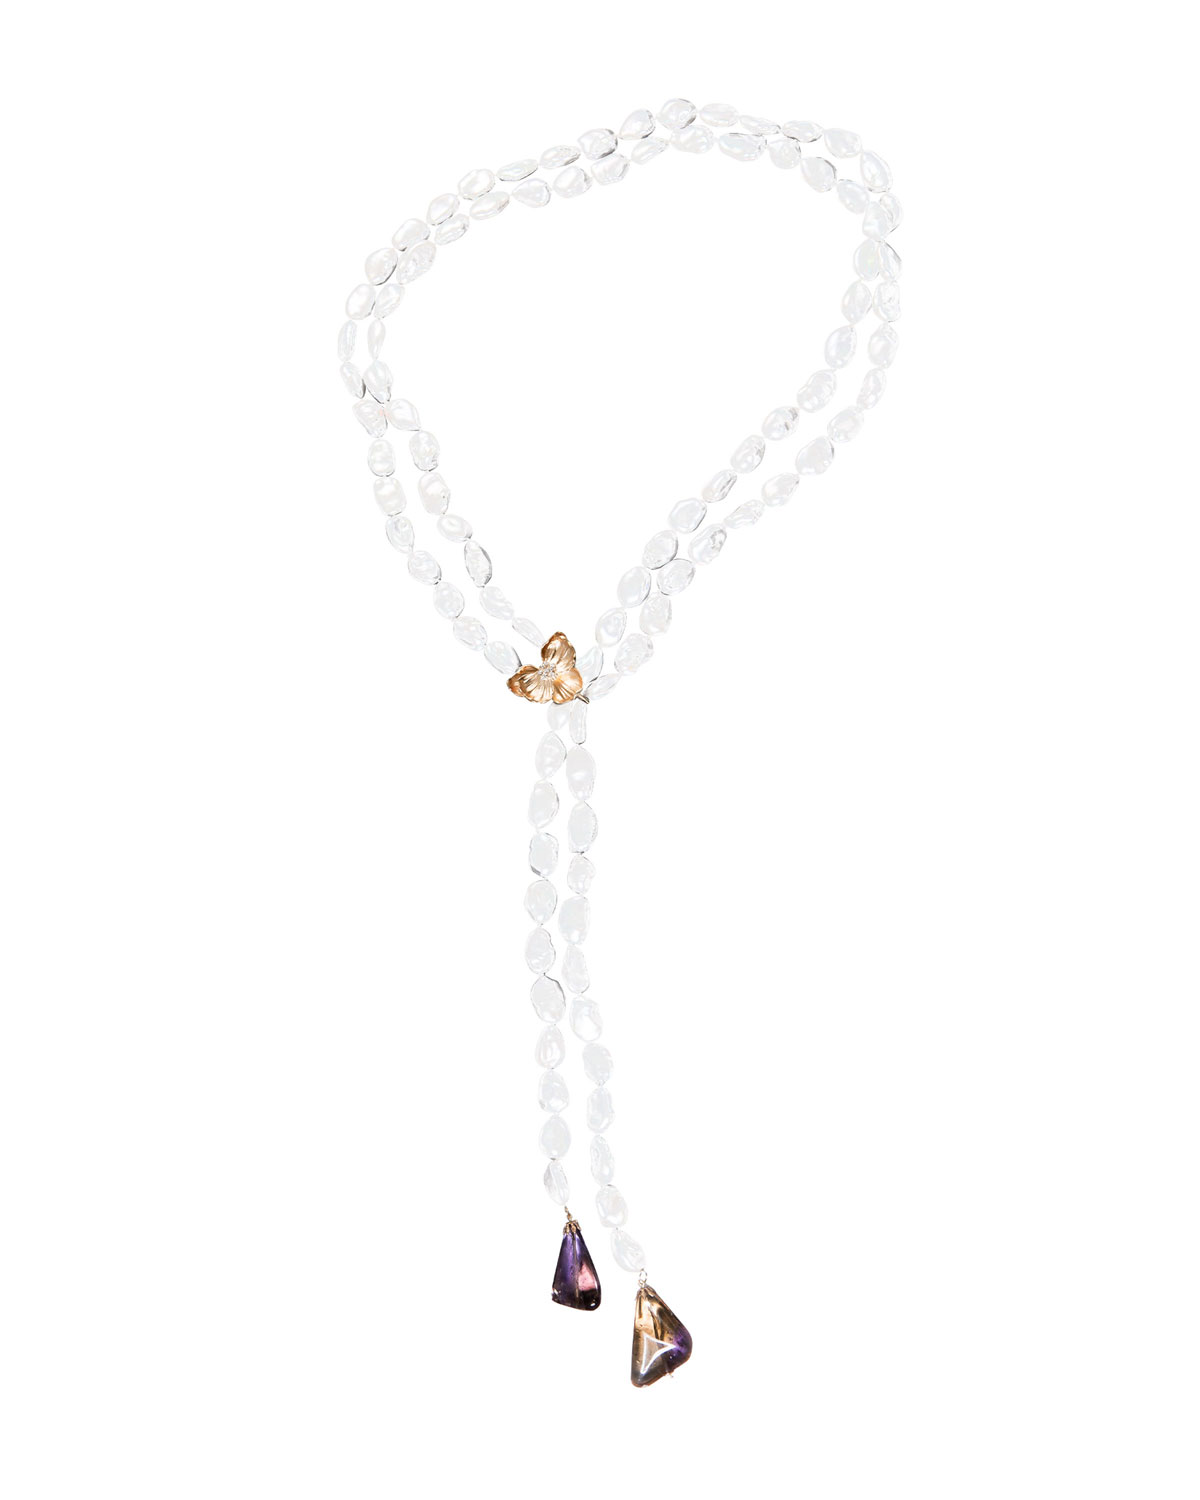 Orchid Lariat Pearl Necklace with Ametrine & Diamonds